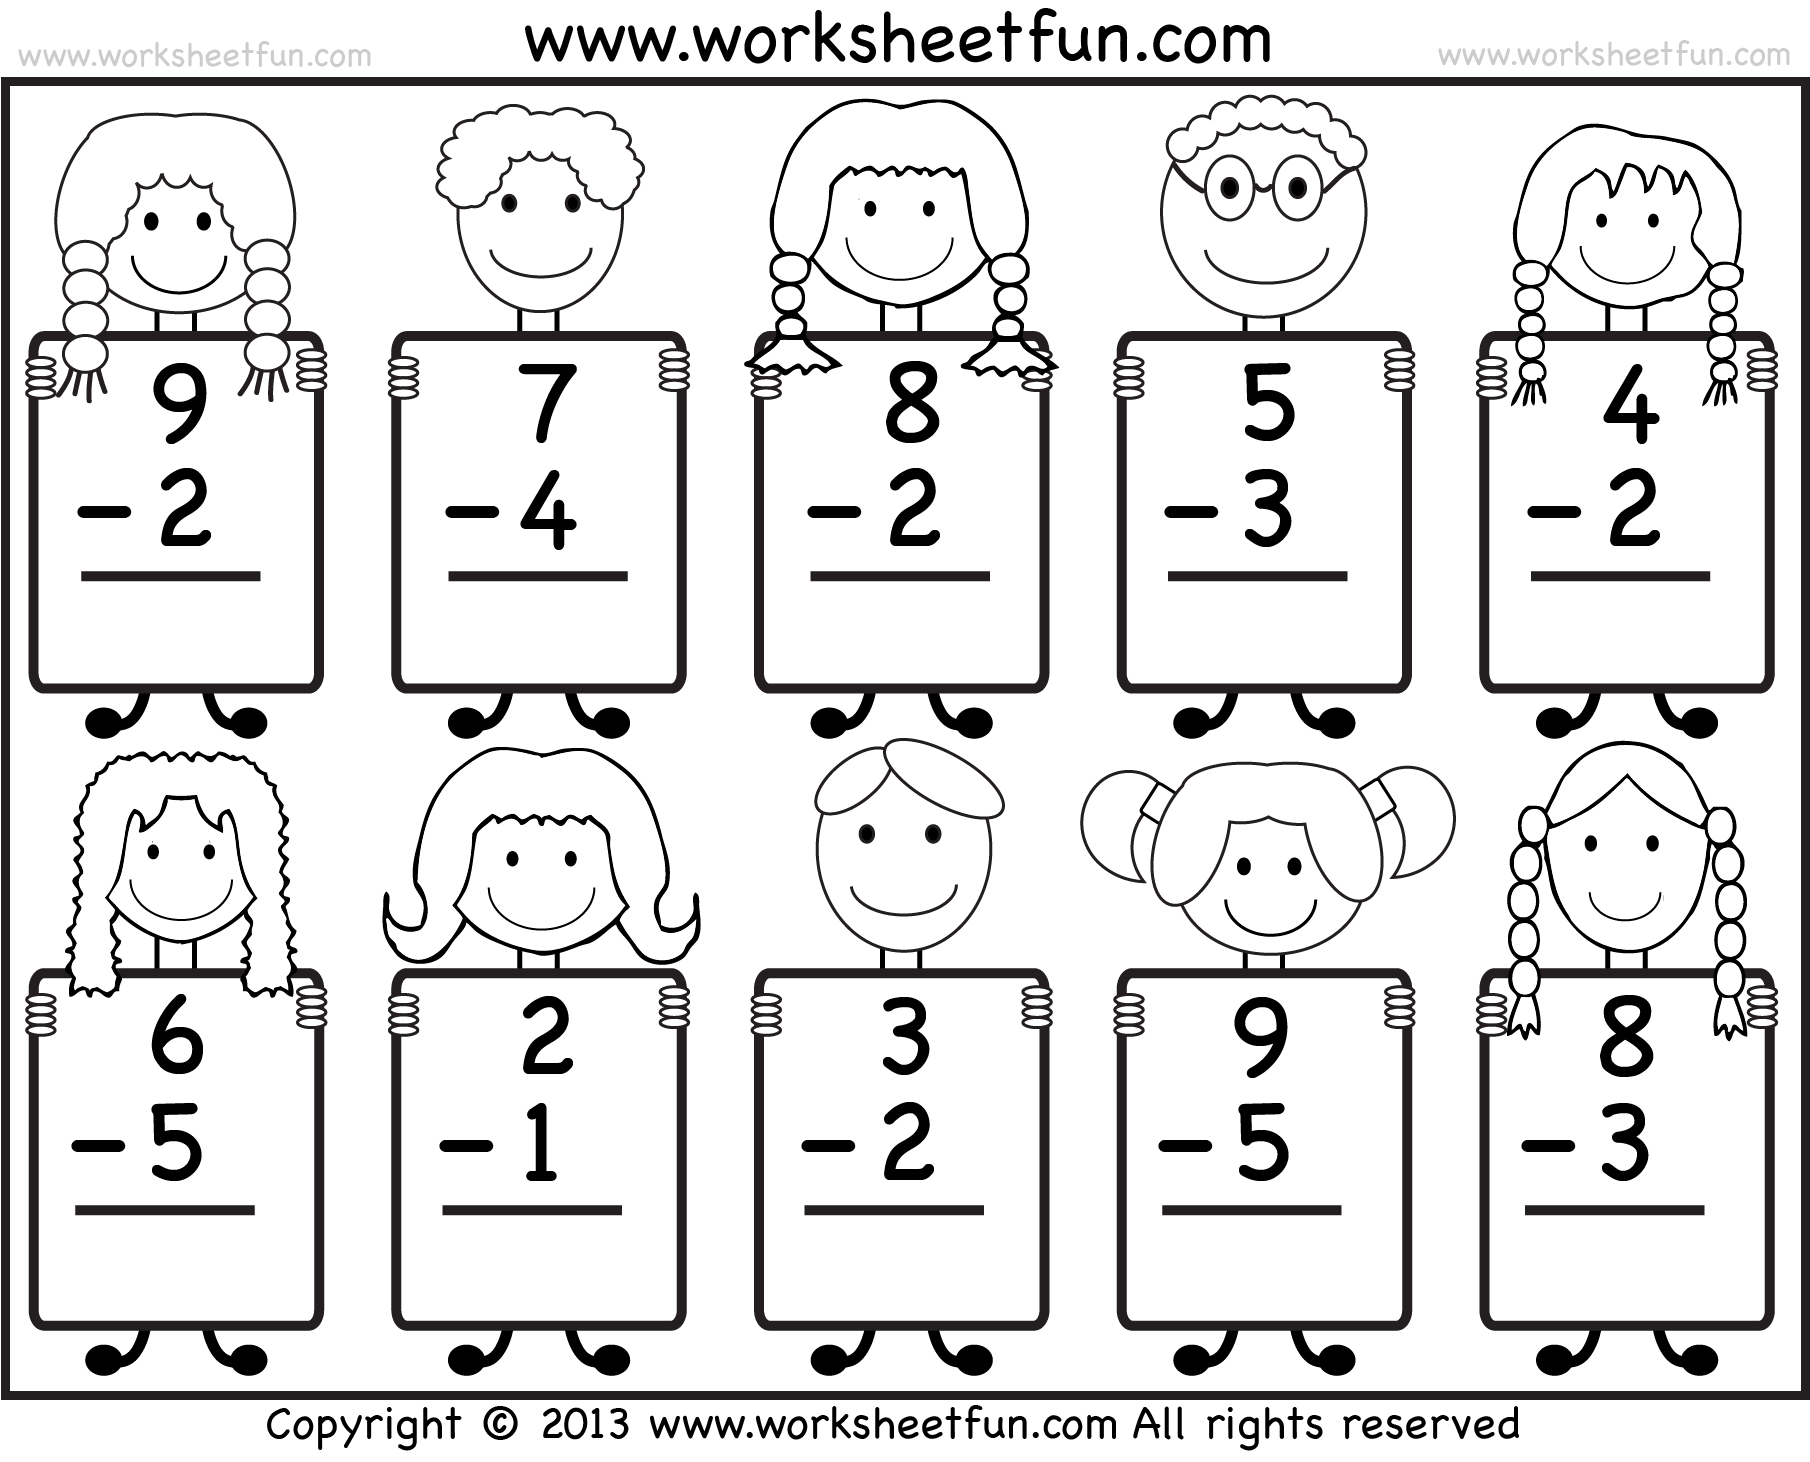 Worksheets Subtraction Worksheets For Kindergarten beginner subtraction 10 kindergarten worksheets subtraction